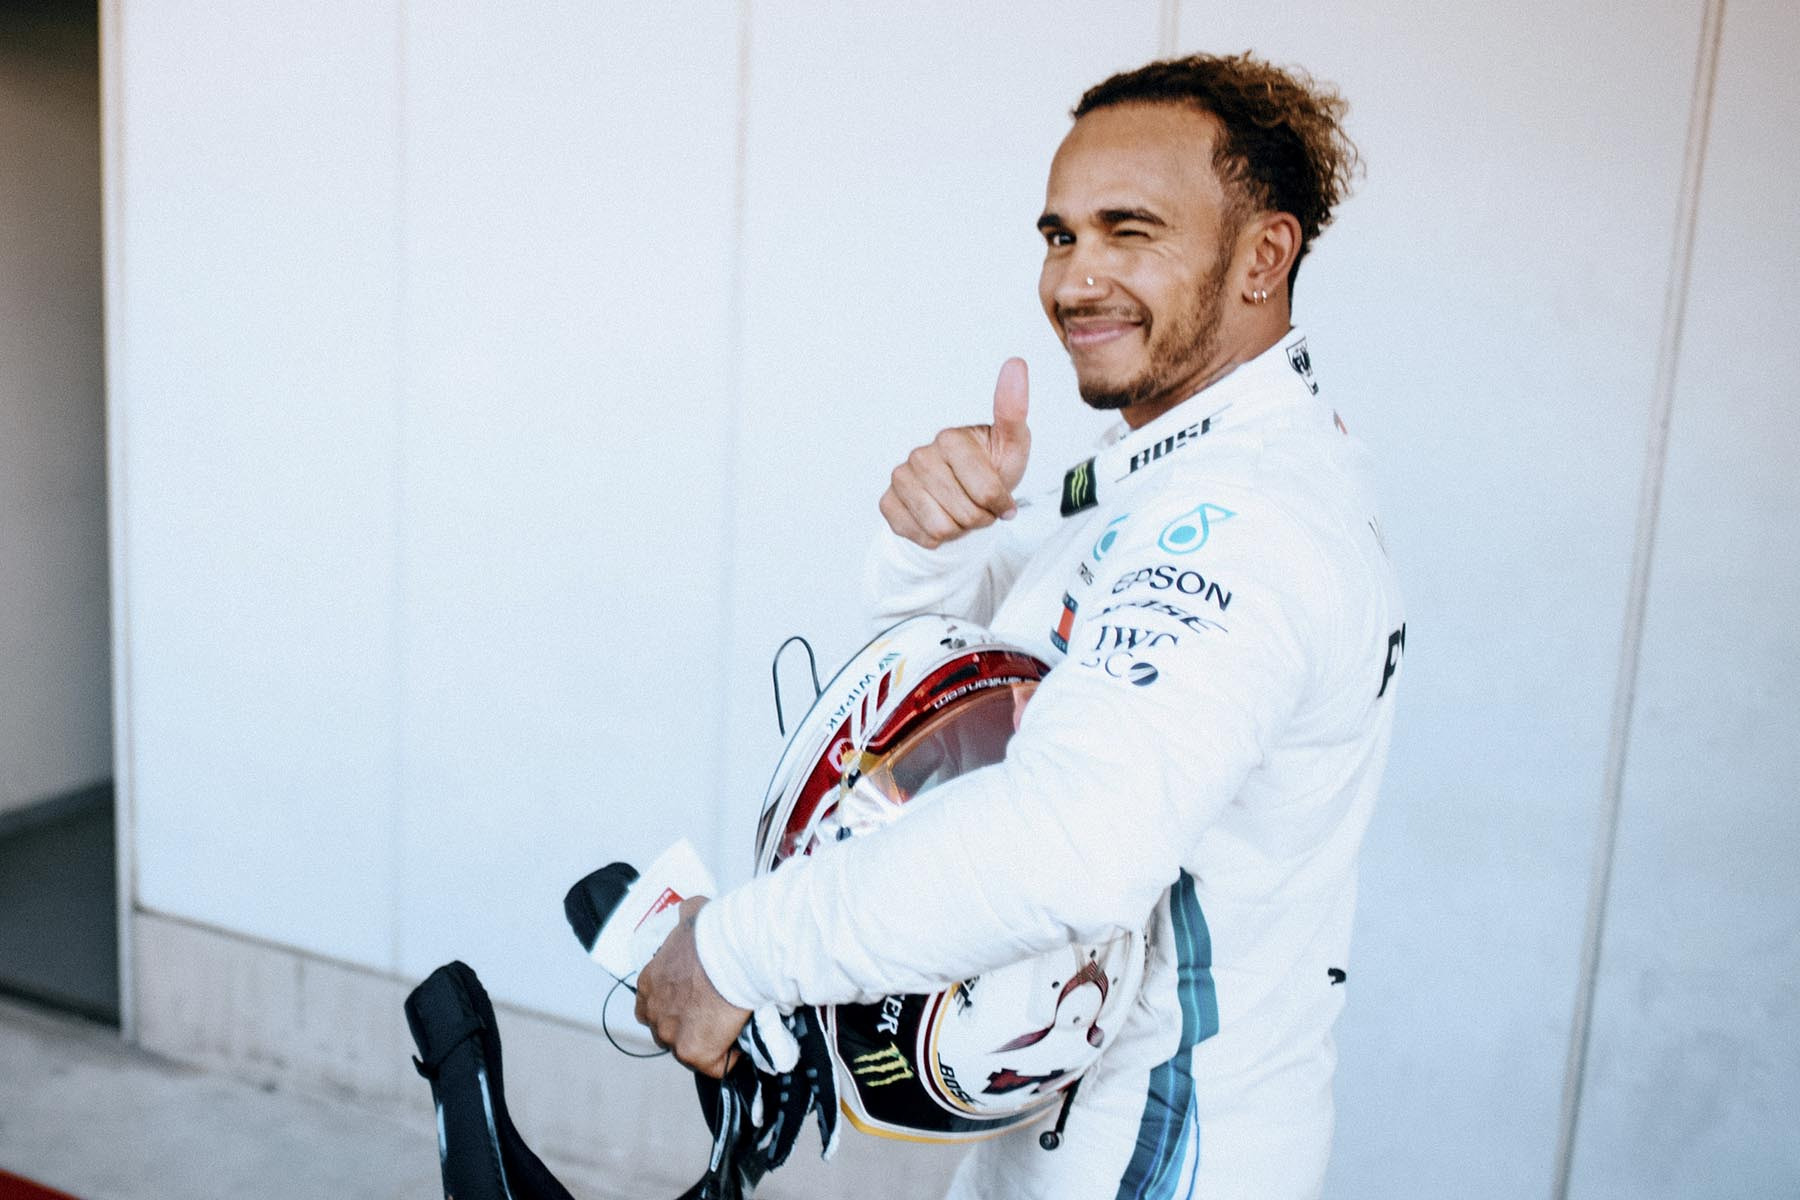 Lewis Hamilton celebrates victory at the 2018 Japanese Grand Prix.